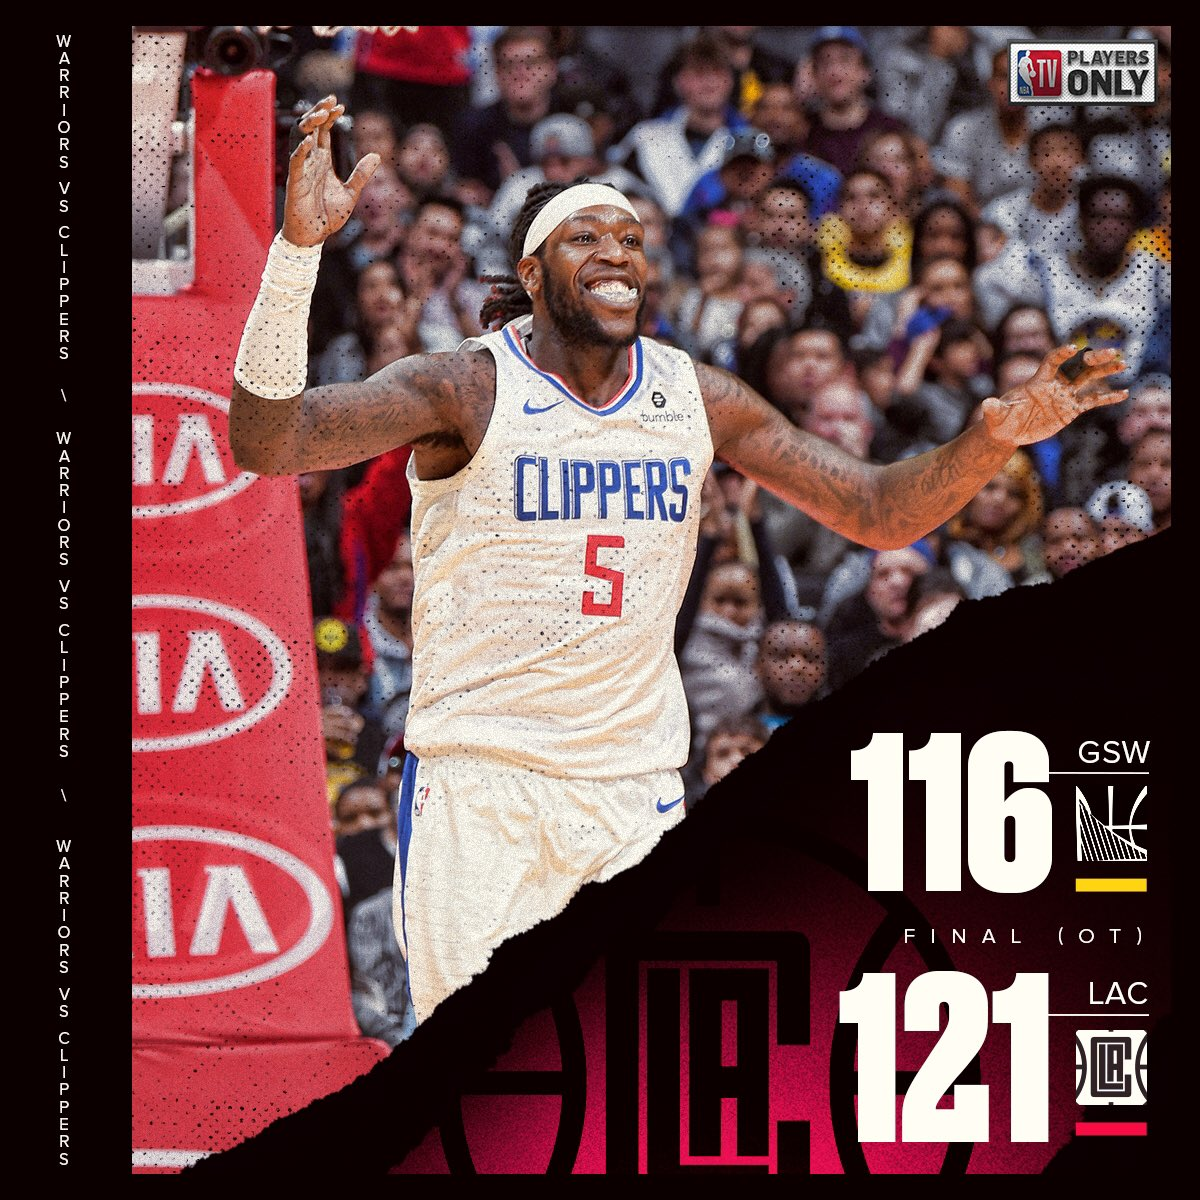 The @LAClippers hang on to defeat the Warriors at home in OT! 😱 #ClipperNation | #PlayersOnly